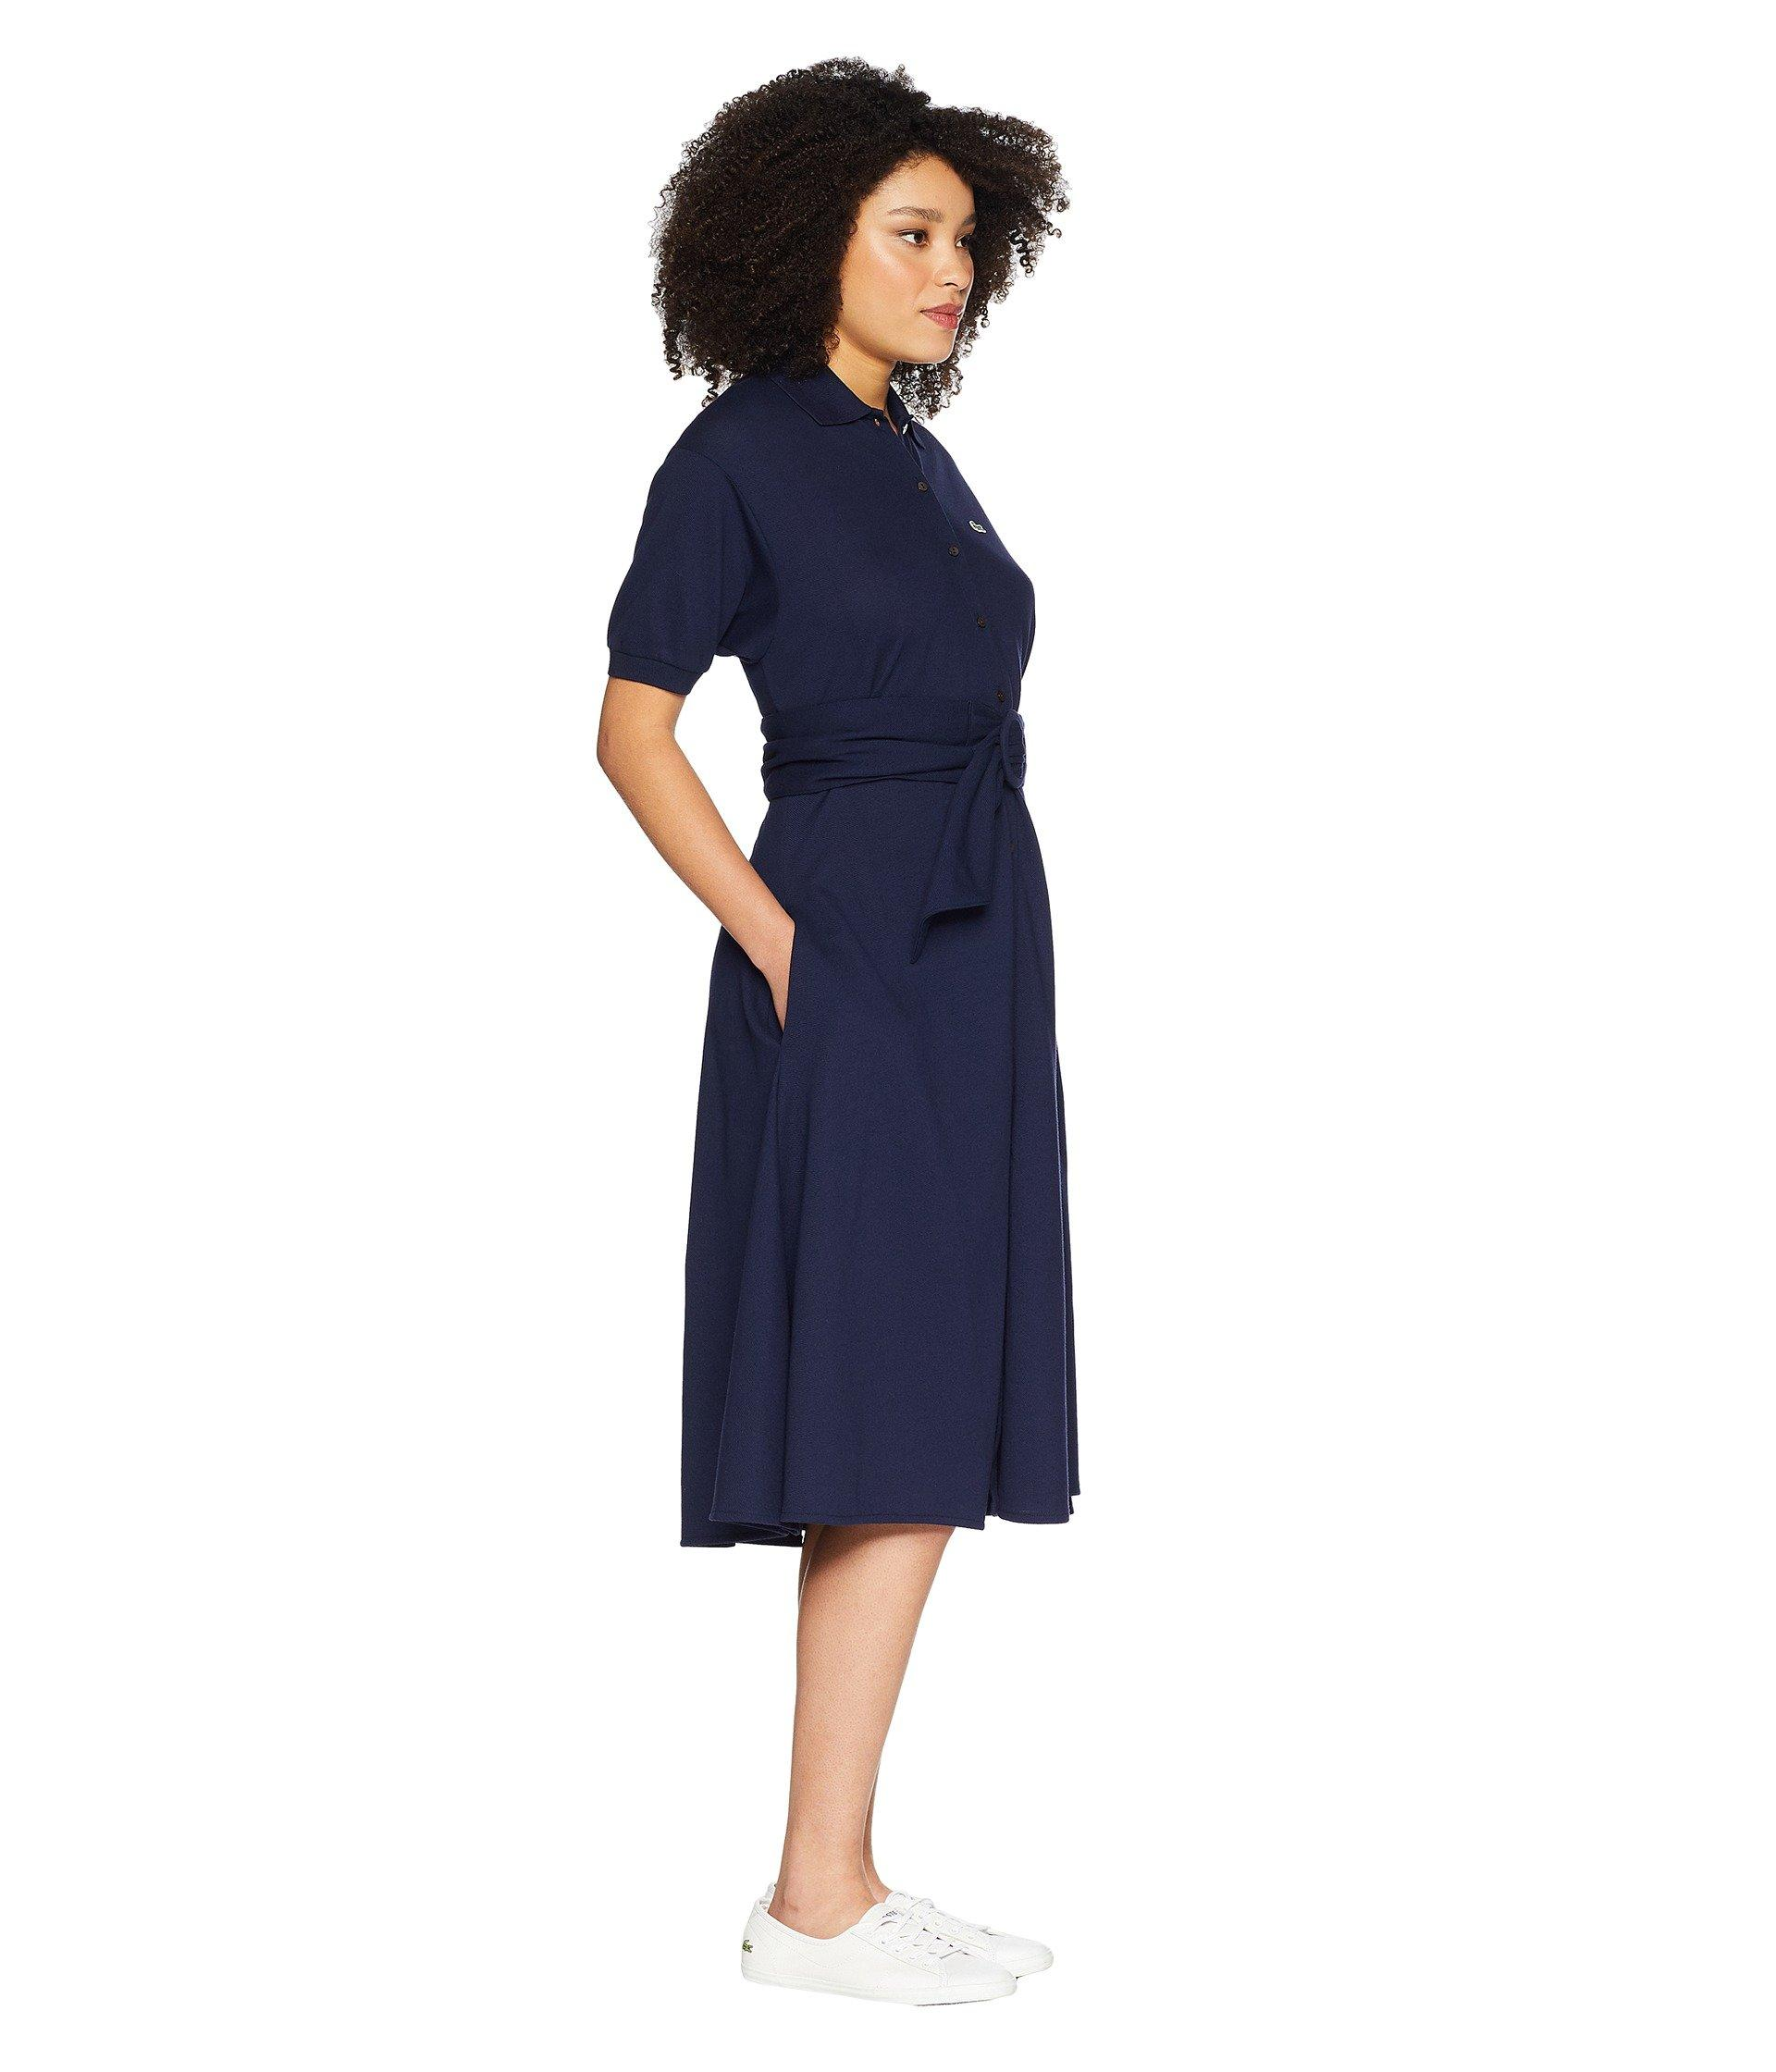 cf870b89a28f1f Lacoste - Short Sleeve Classic Supple Petit Pique Belted Polo Dress (navy  Blue) Women s. View fullscreen